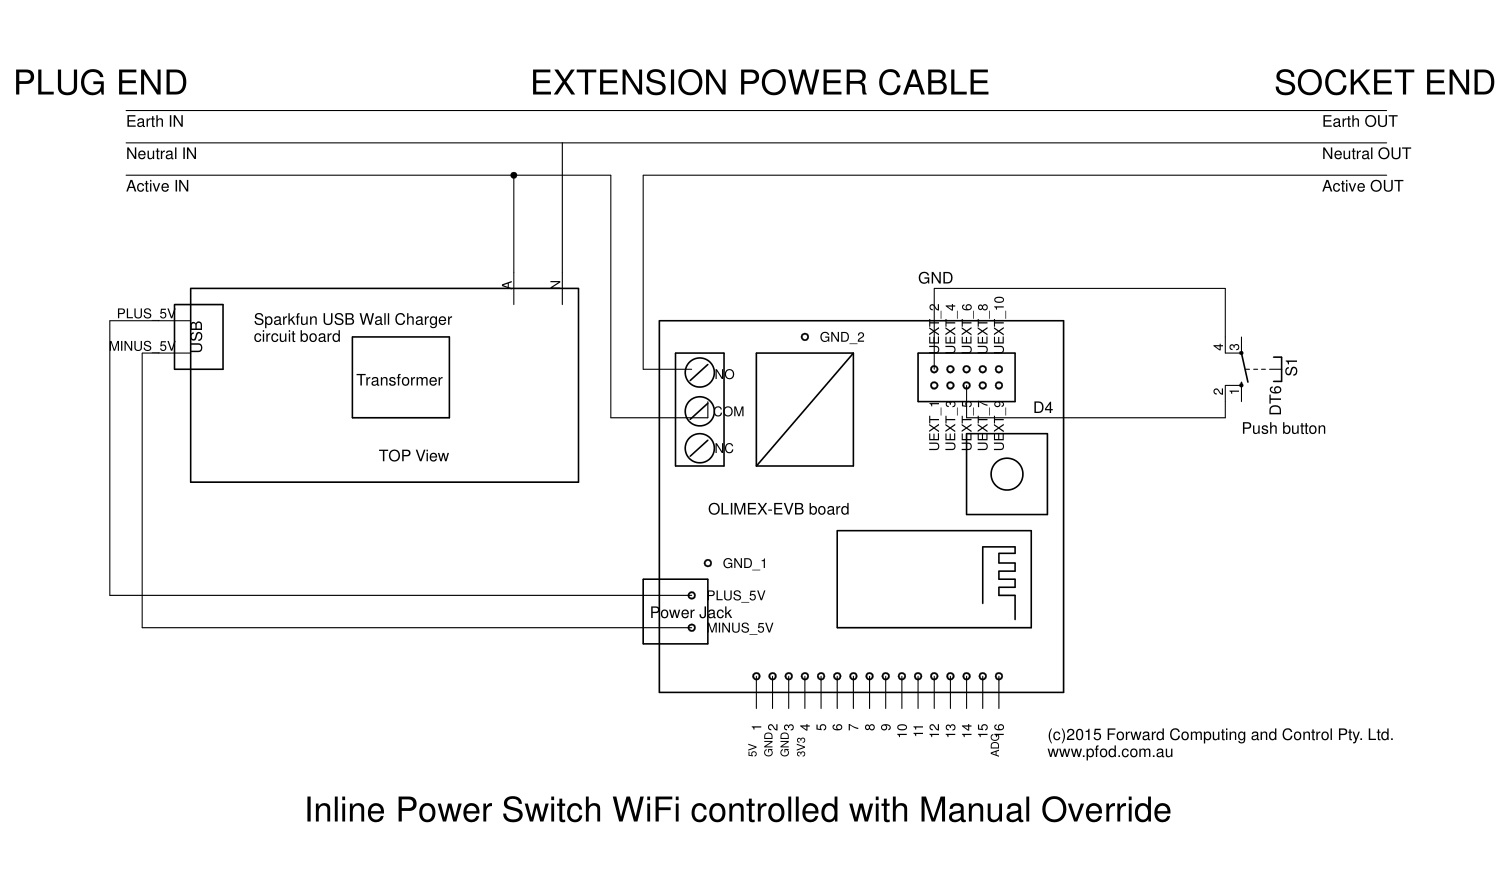 WiringDiagram simple, secure, internet power switch with manual override iot greengate lk8 override switch wiring diagram at bayanpartner.co